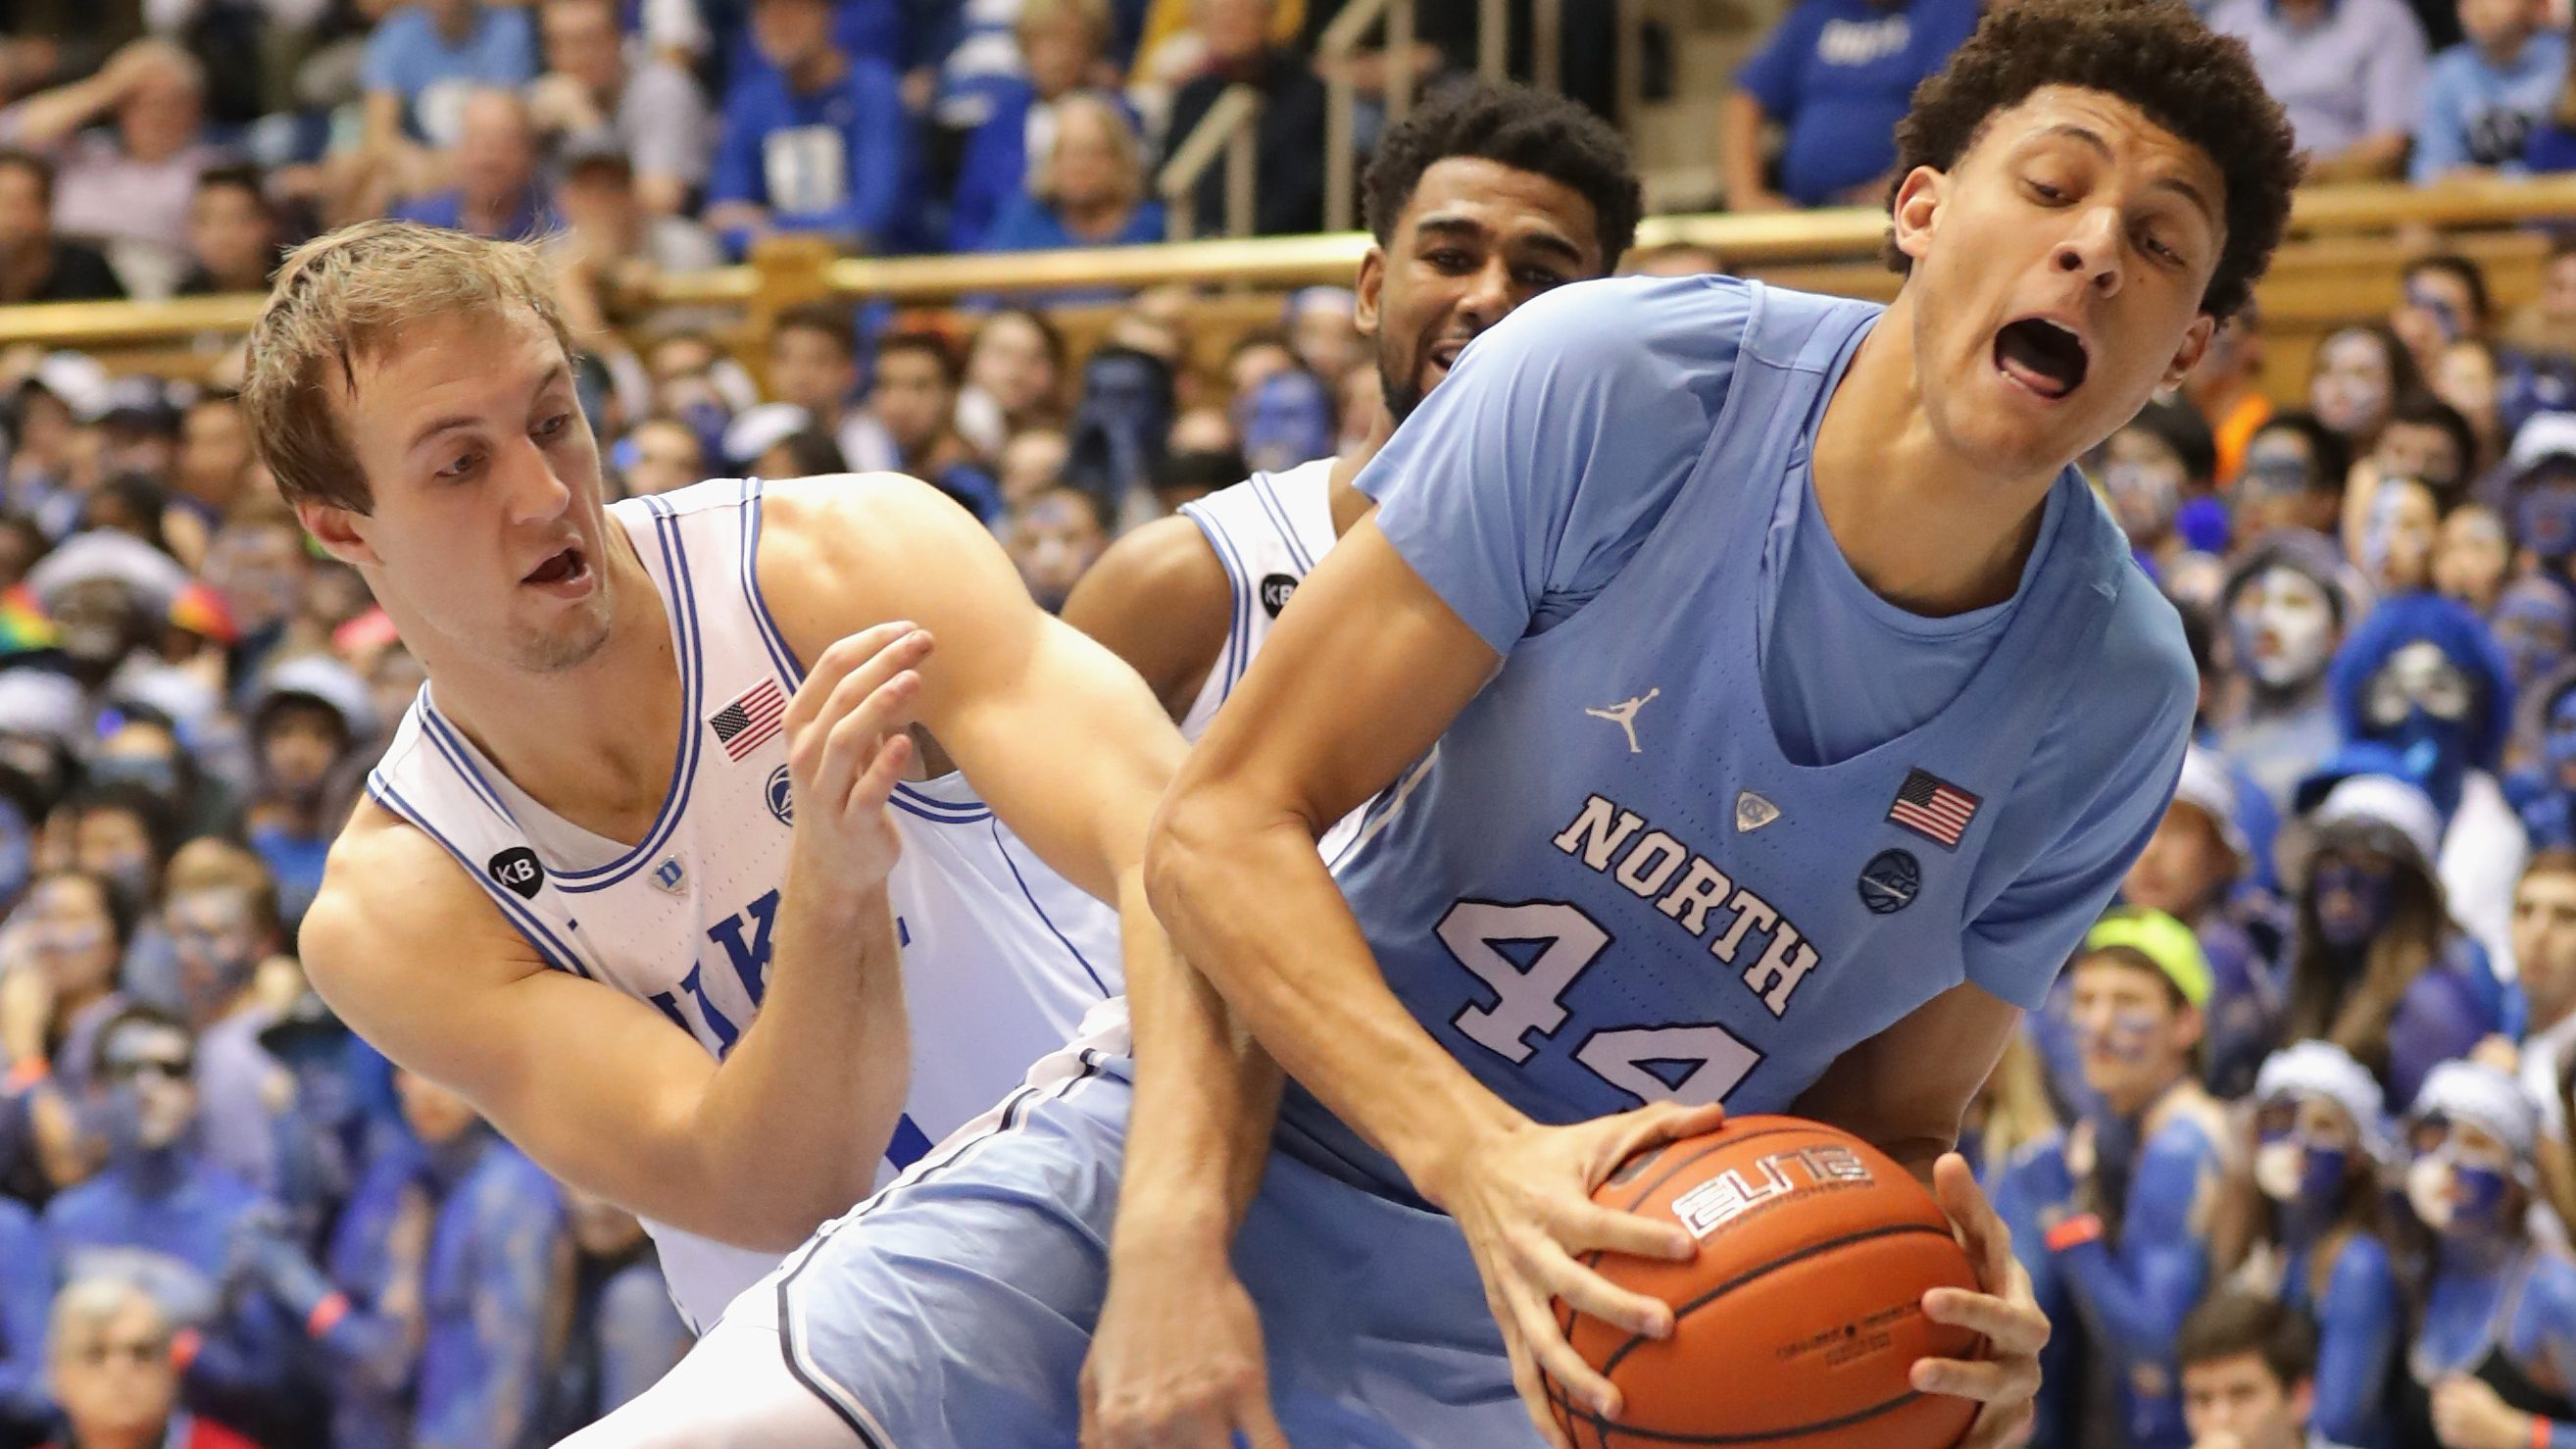 DURHAM, NC - FEBRUARY 09:  Luke Kennard #5 of the Duke Blue Devils battles for a loose ball against Justin Jackson #44 of the North Carolina Tar Heels during their game at Cameron Indoor Stadium on February 9, 2017 in Durham, North Carolina.  (Photo by Streeter Lecka/Getty Images)